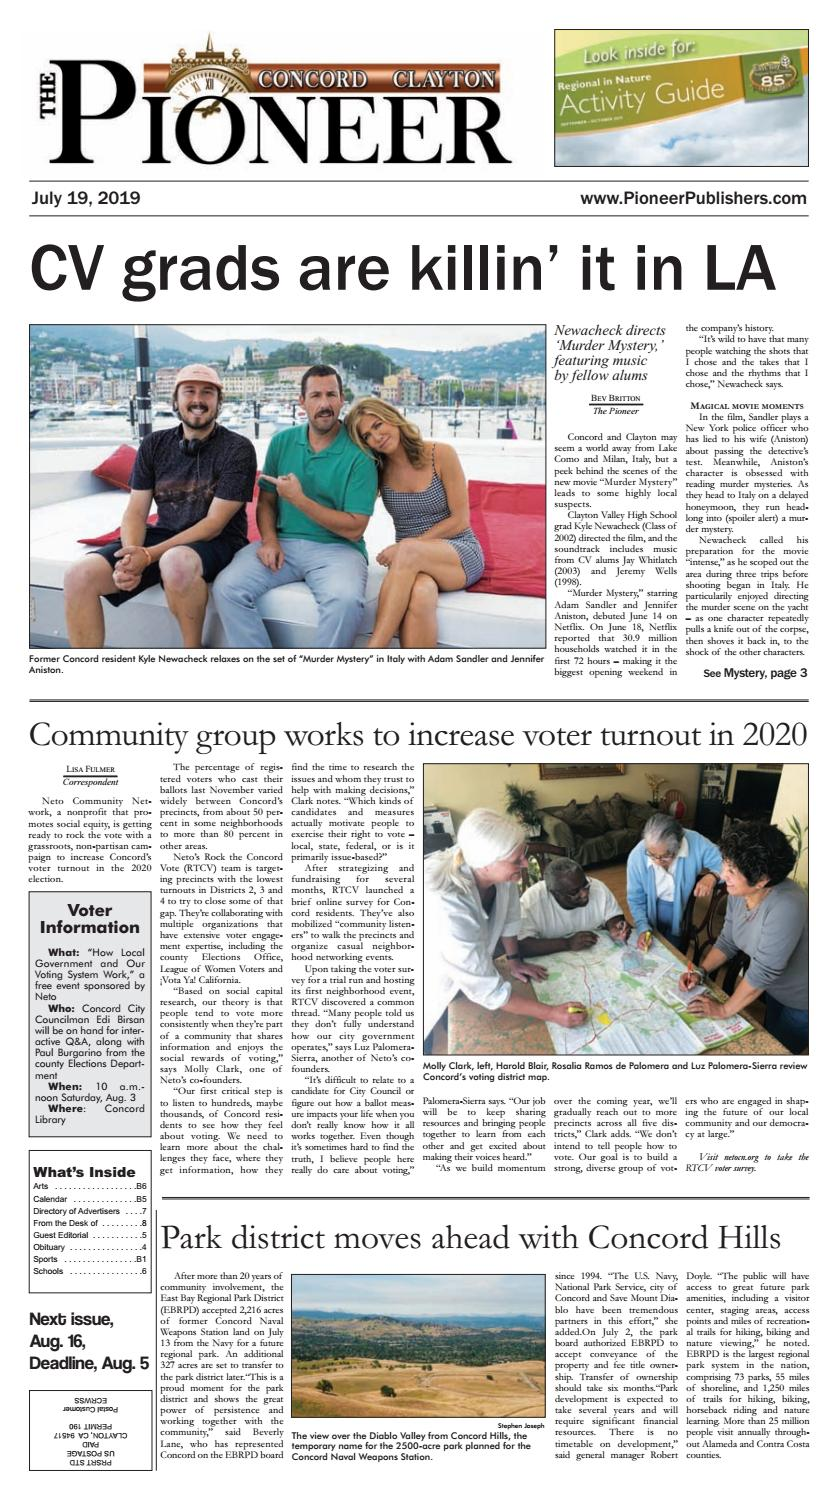 JUL 19 The Pioneer 2019 by Pioneer Publishers - issuu